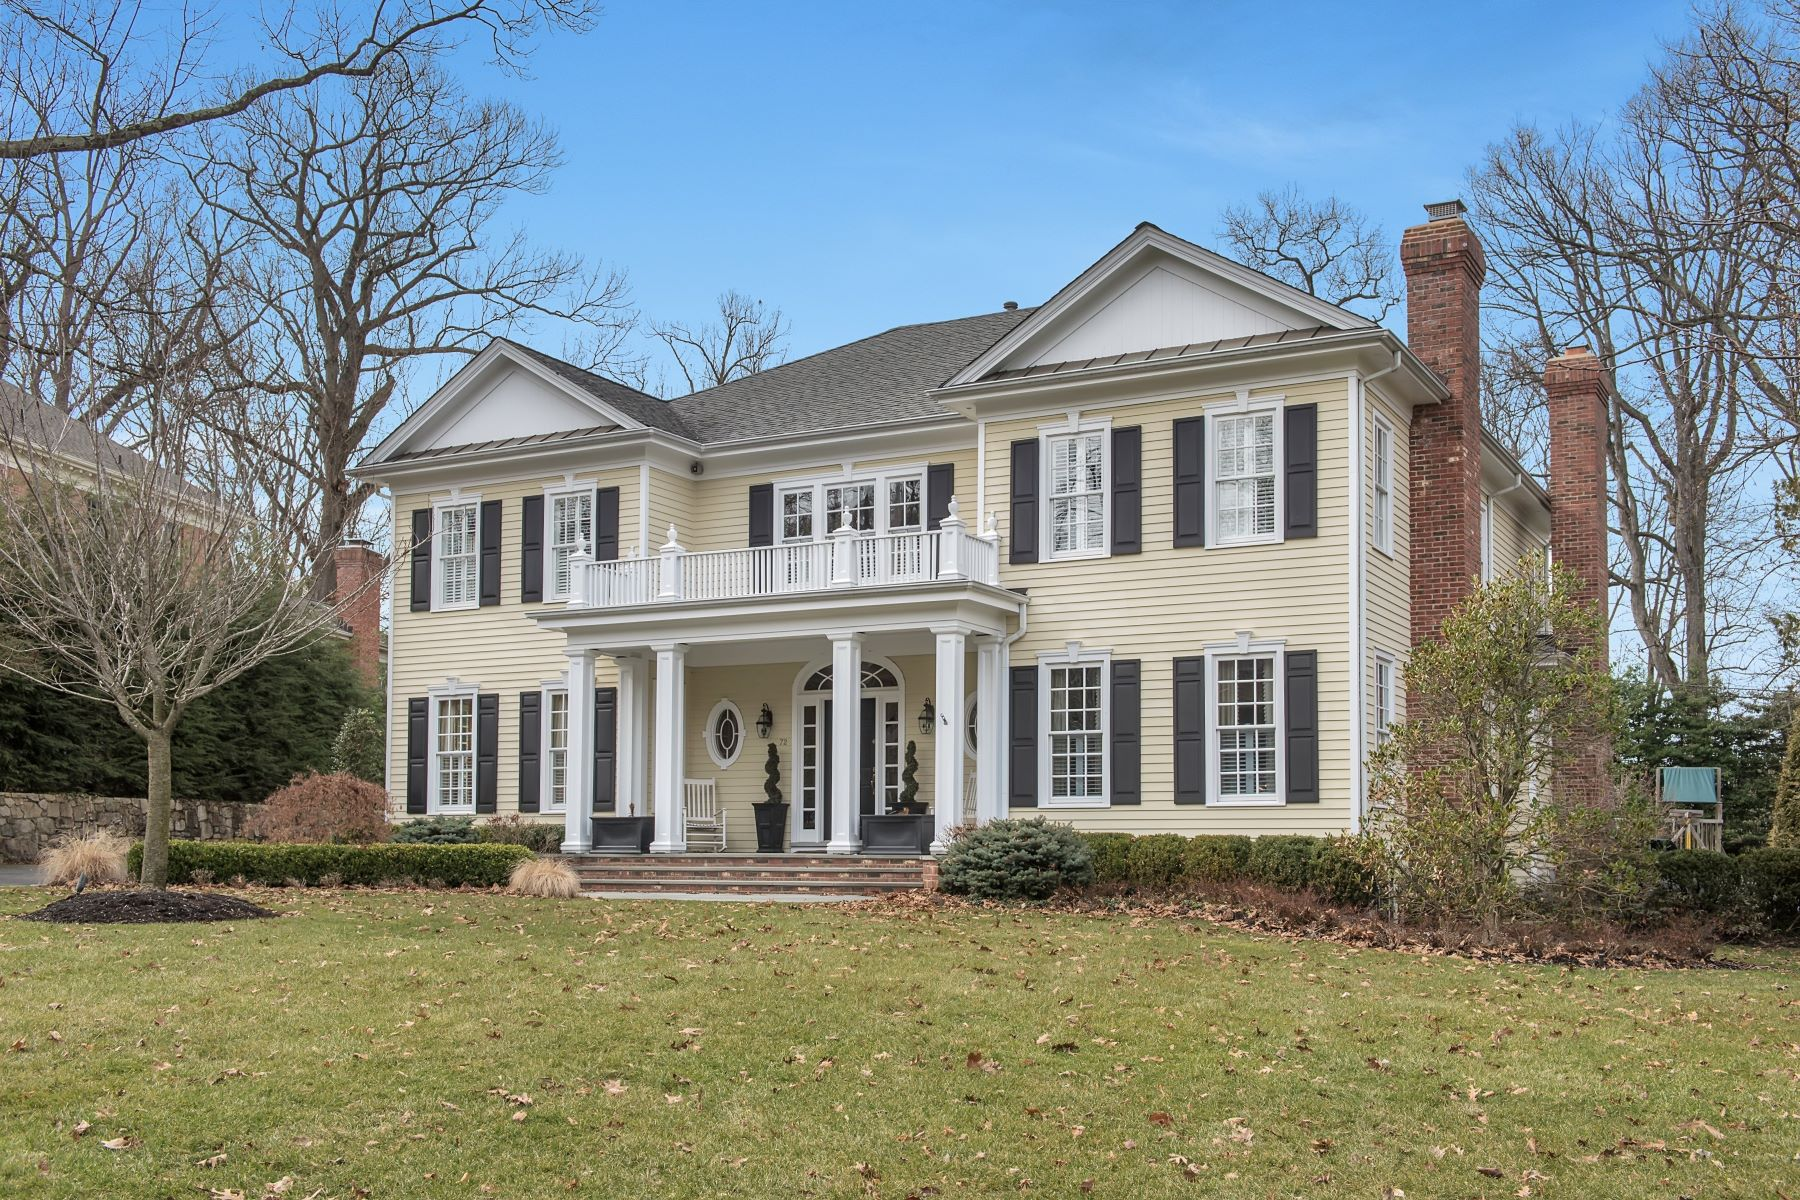 Single Family Home for Sale at This classic Dixon Peer colonial features beautiful architectural details. 72 Fernwood Road, Summit, New Jersey 07901 United States